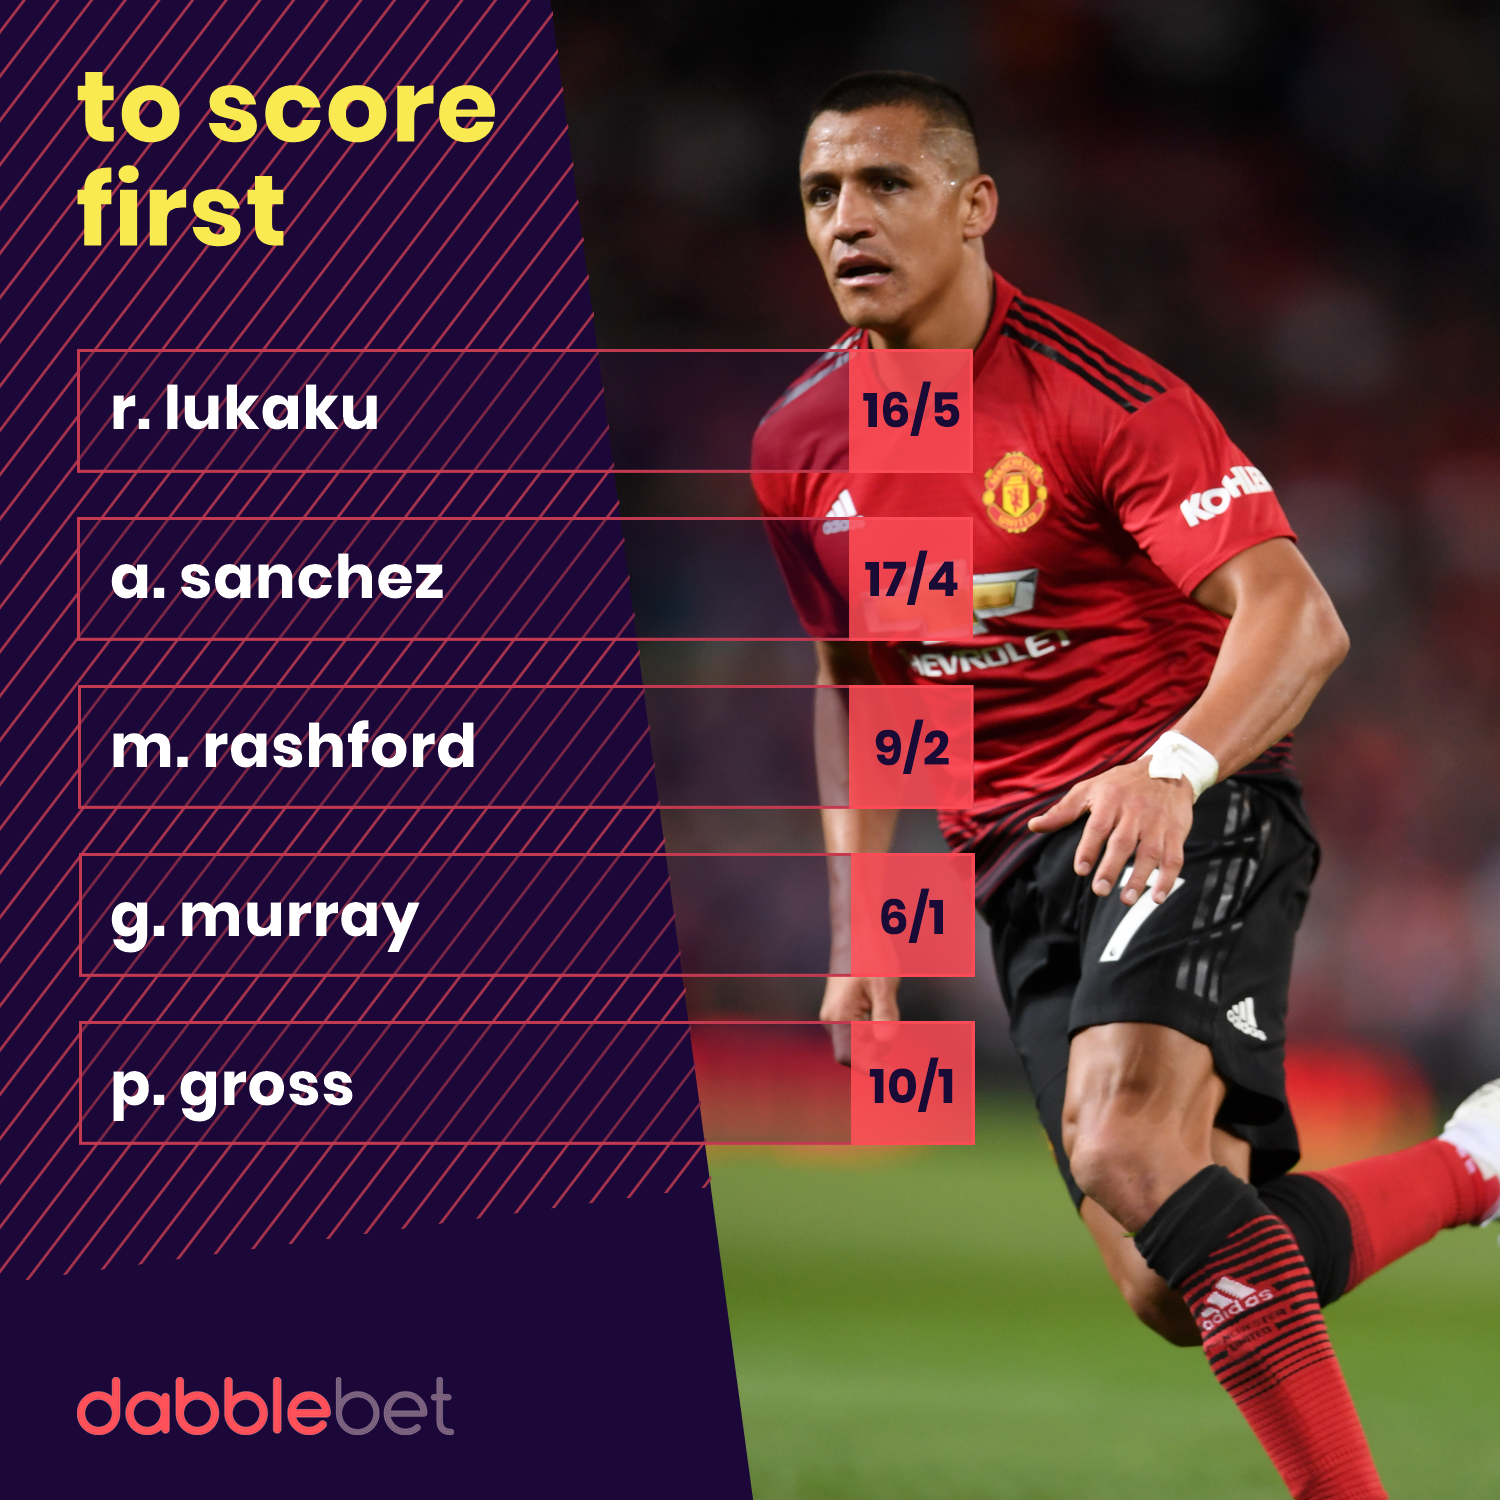 Brighton Man United scorers graphic